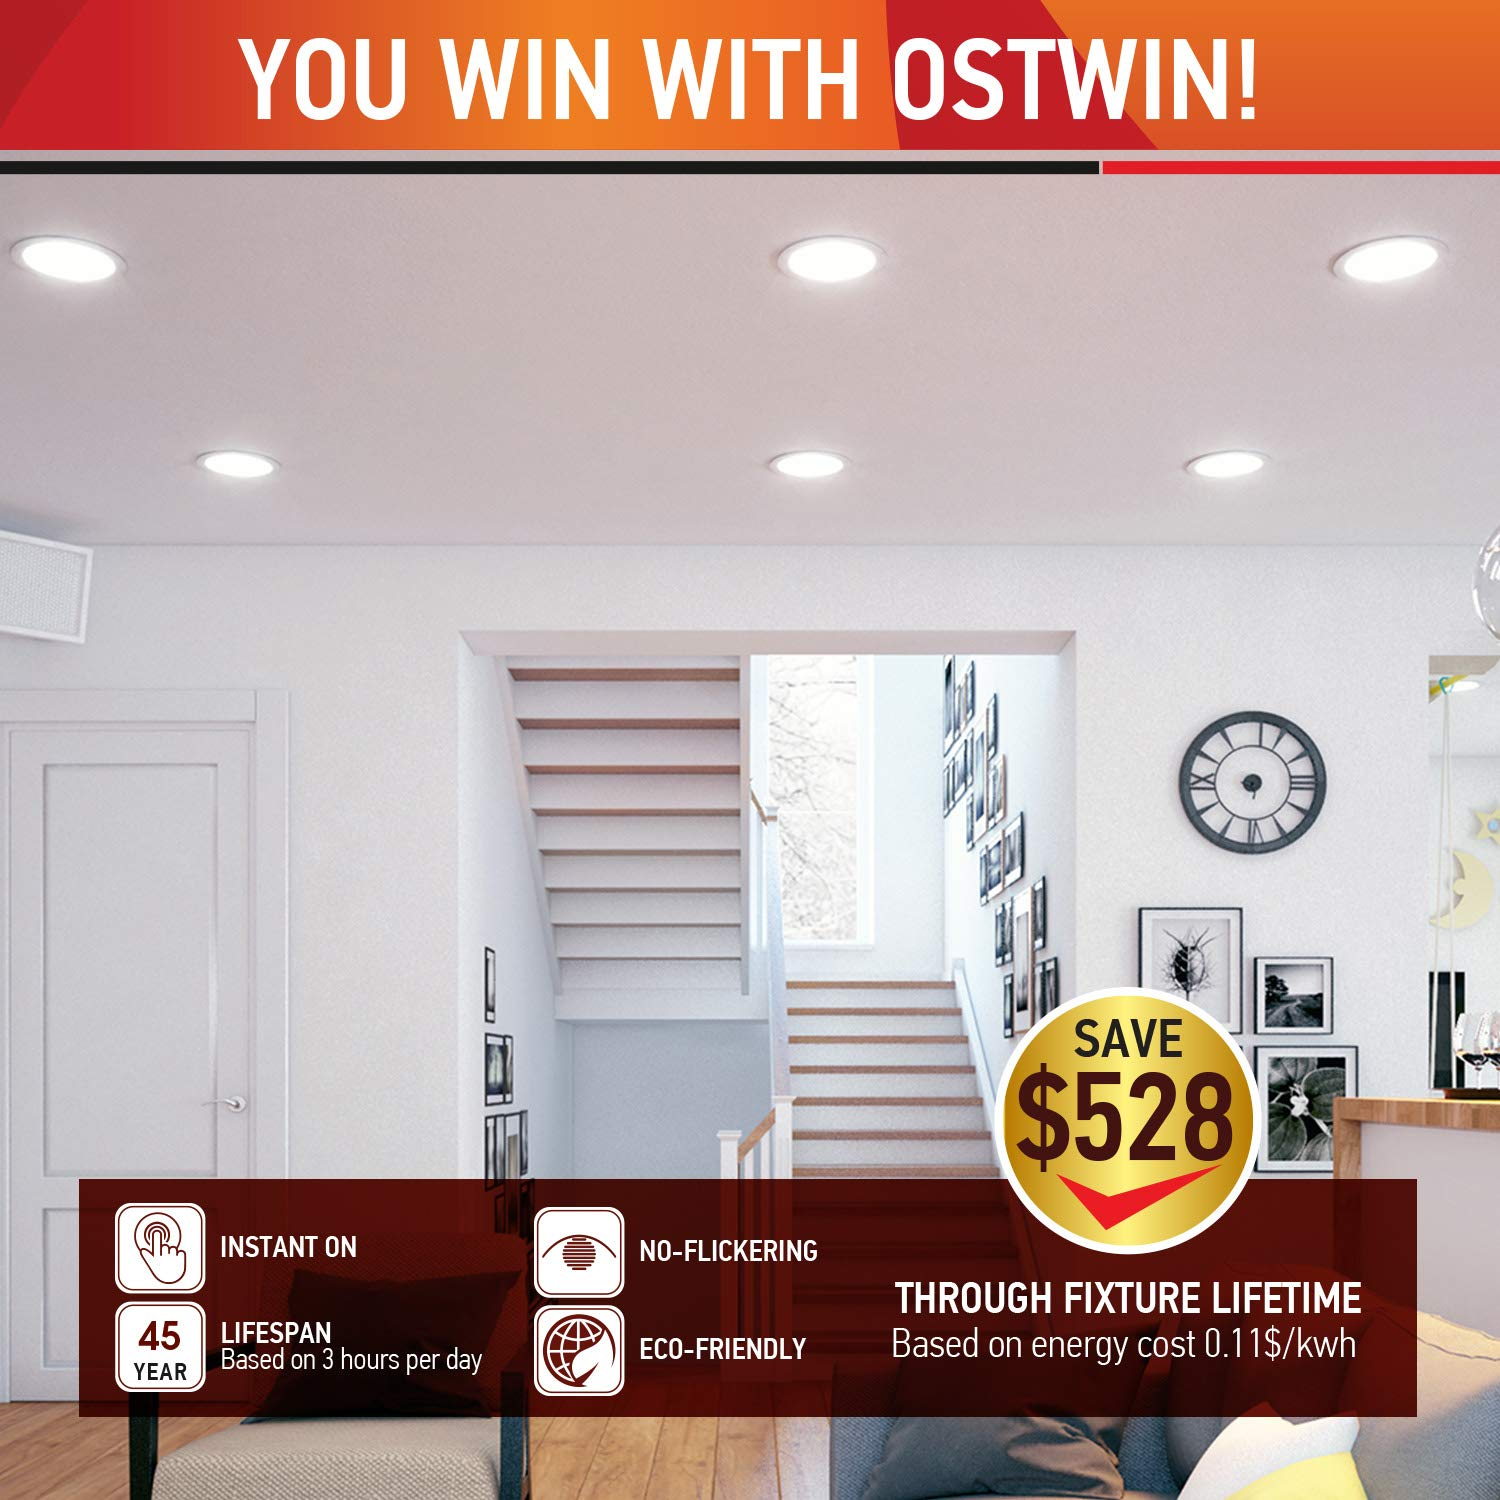 OSTWIN 12 inch 24W (120 Watt Repl.) IC Rated LED Recessed Low Profile Slim Round Panel Light with Junction Box, Dimmable, 3000K Warm Light 1800 Lm. No Can Needed, 12 Pack ETL & Energy Star Listed by OSTWIN (Image #6)